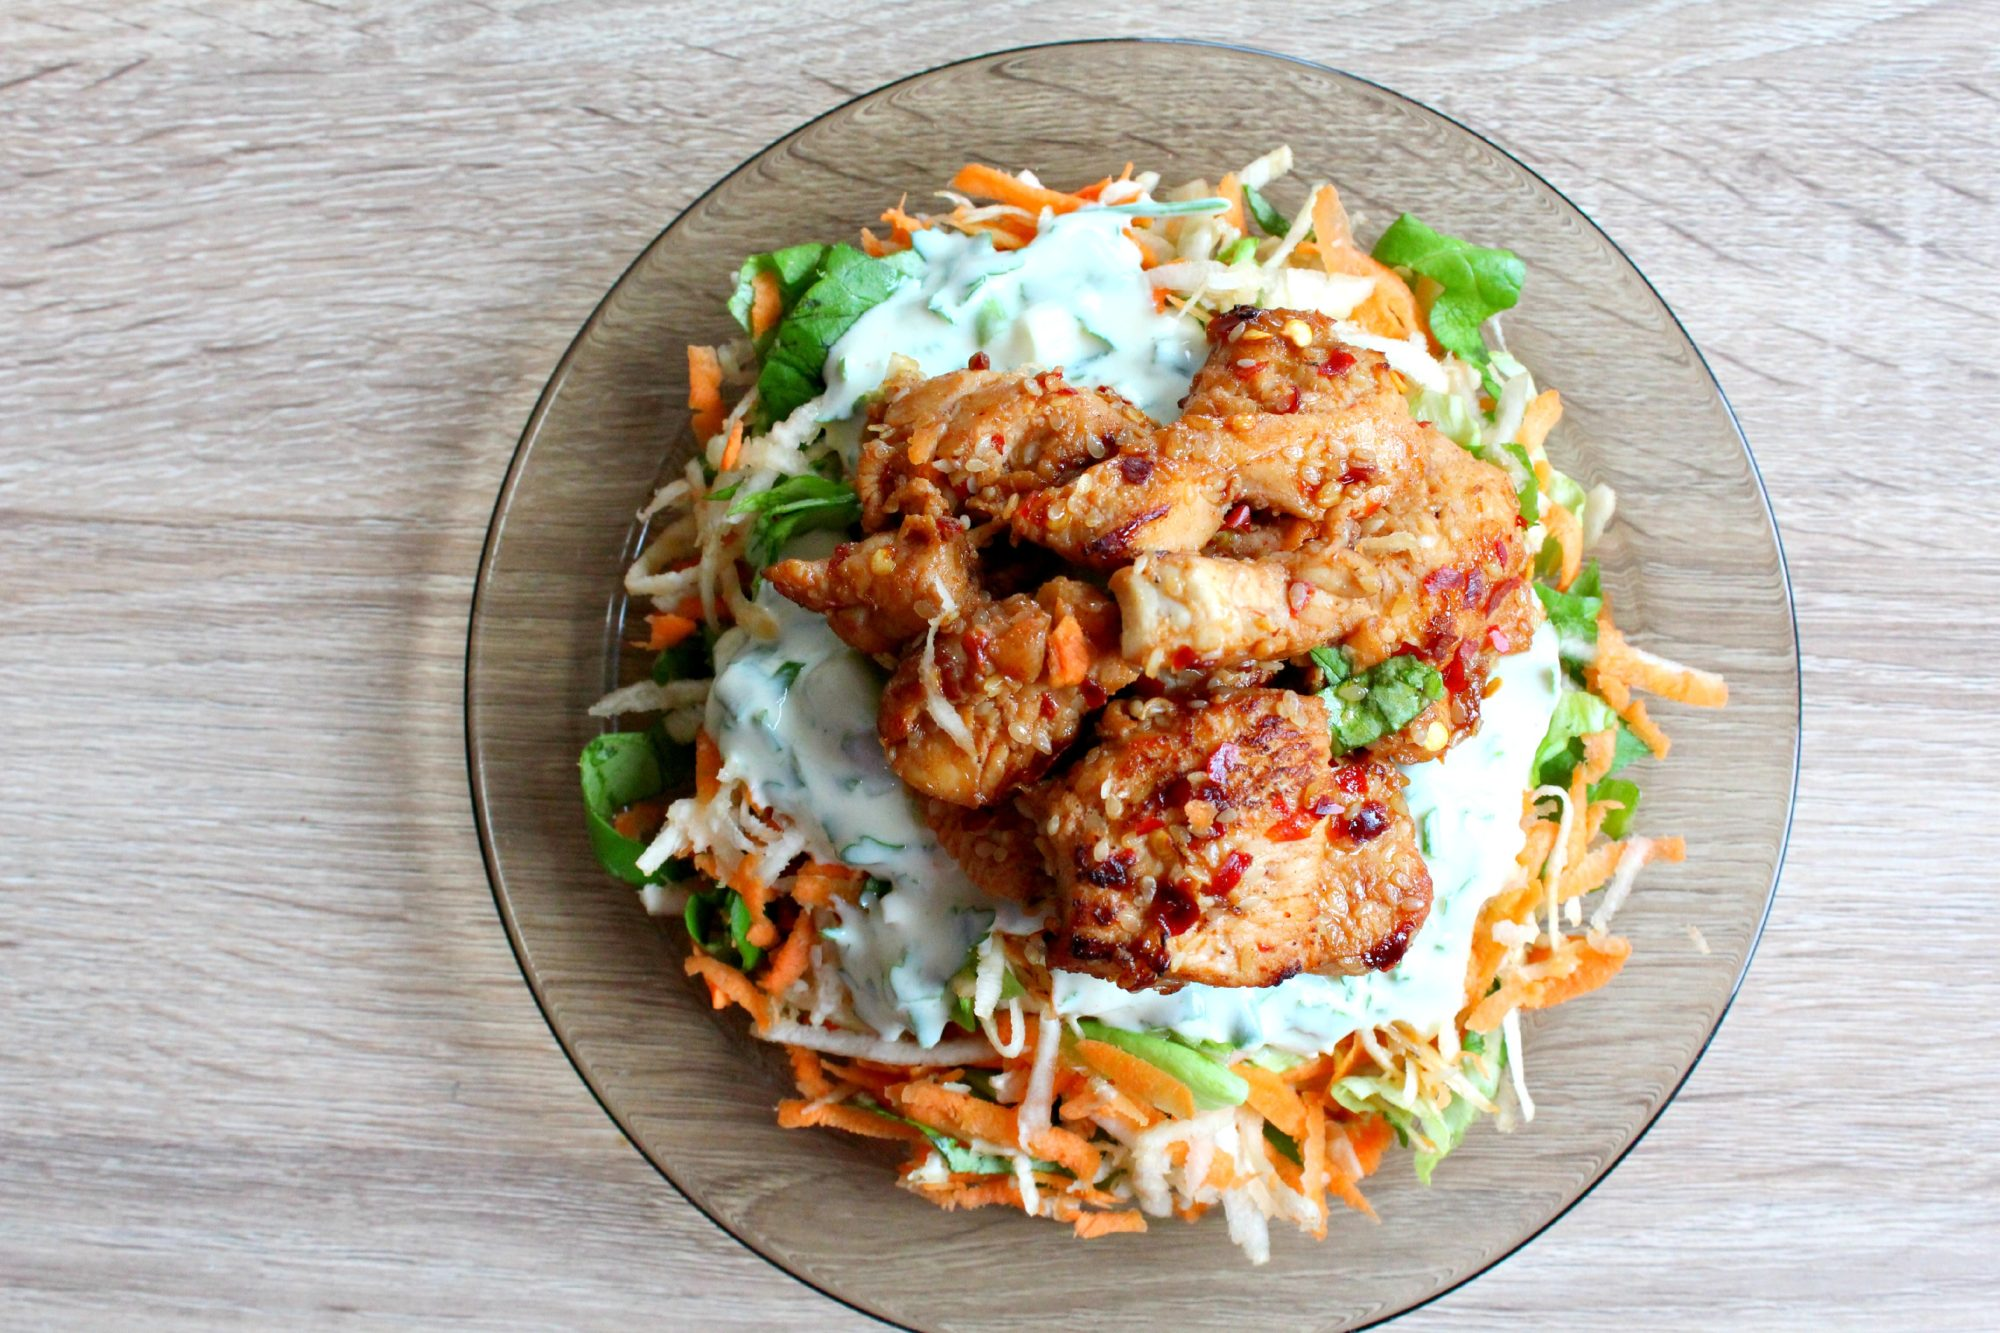 Carrots salad with spicy chicken